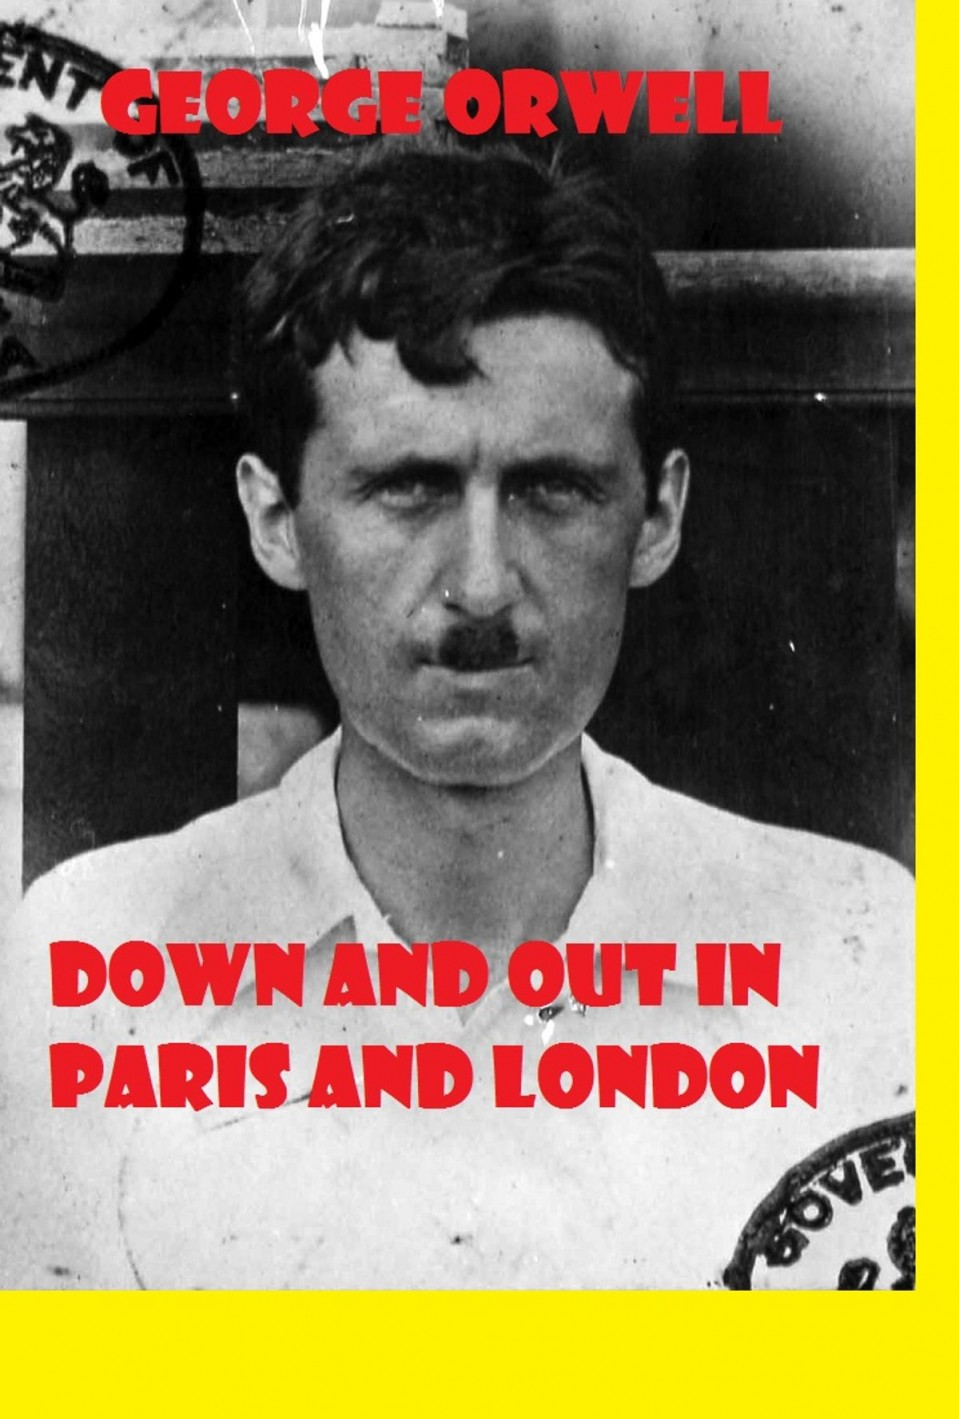 004 Down And Out In Paris London Essay Breathtaking 960